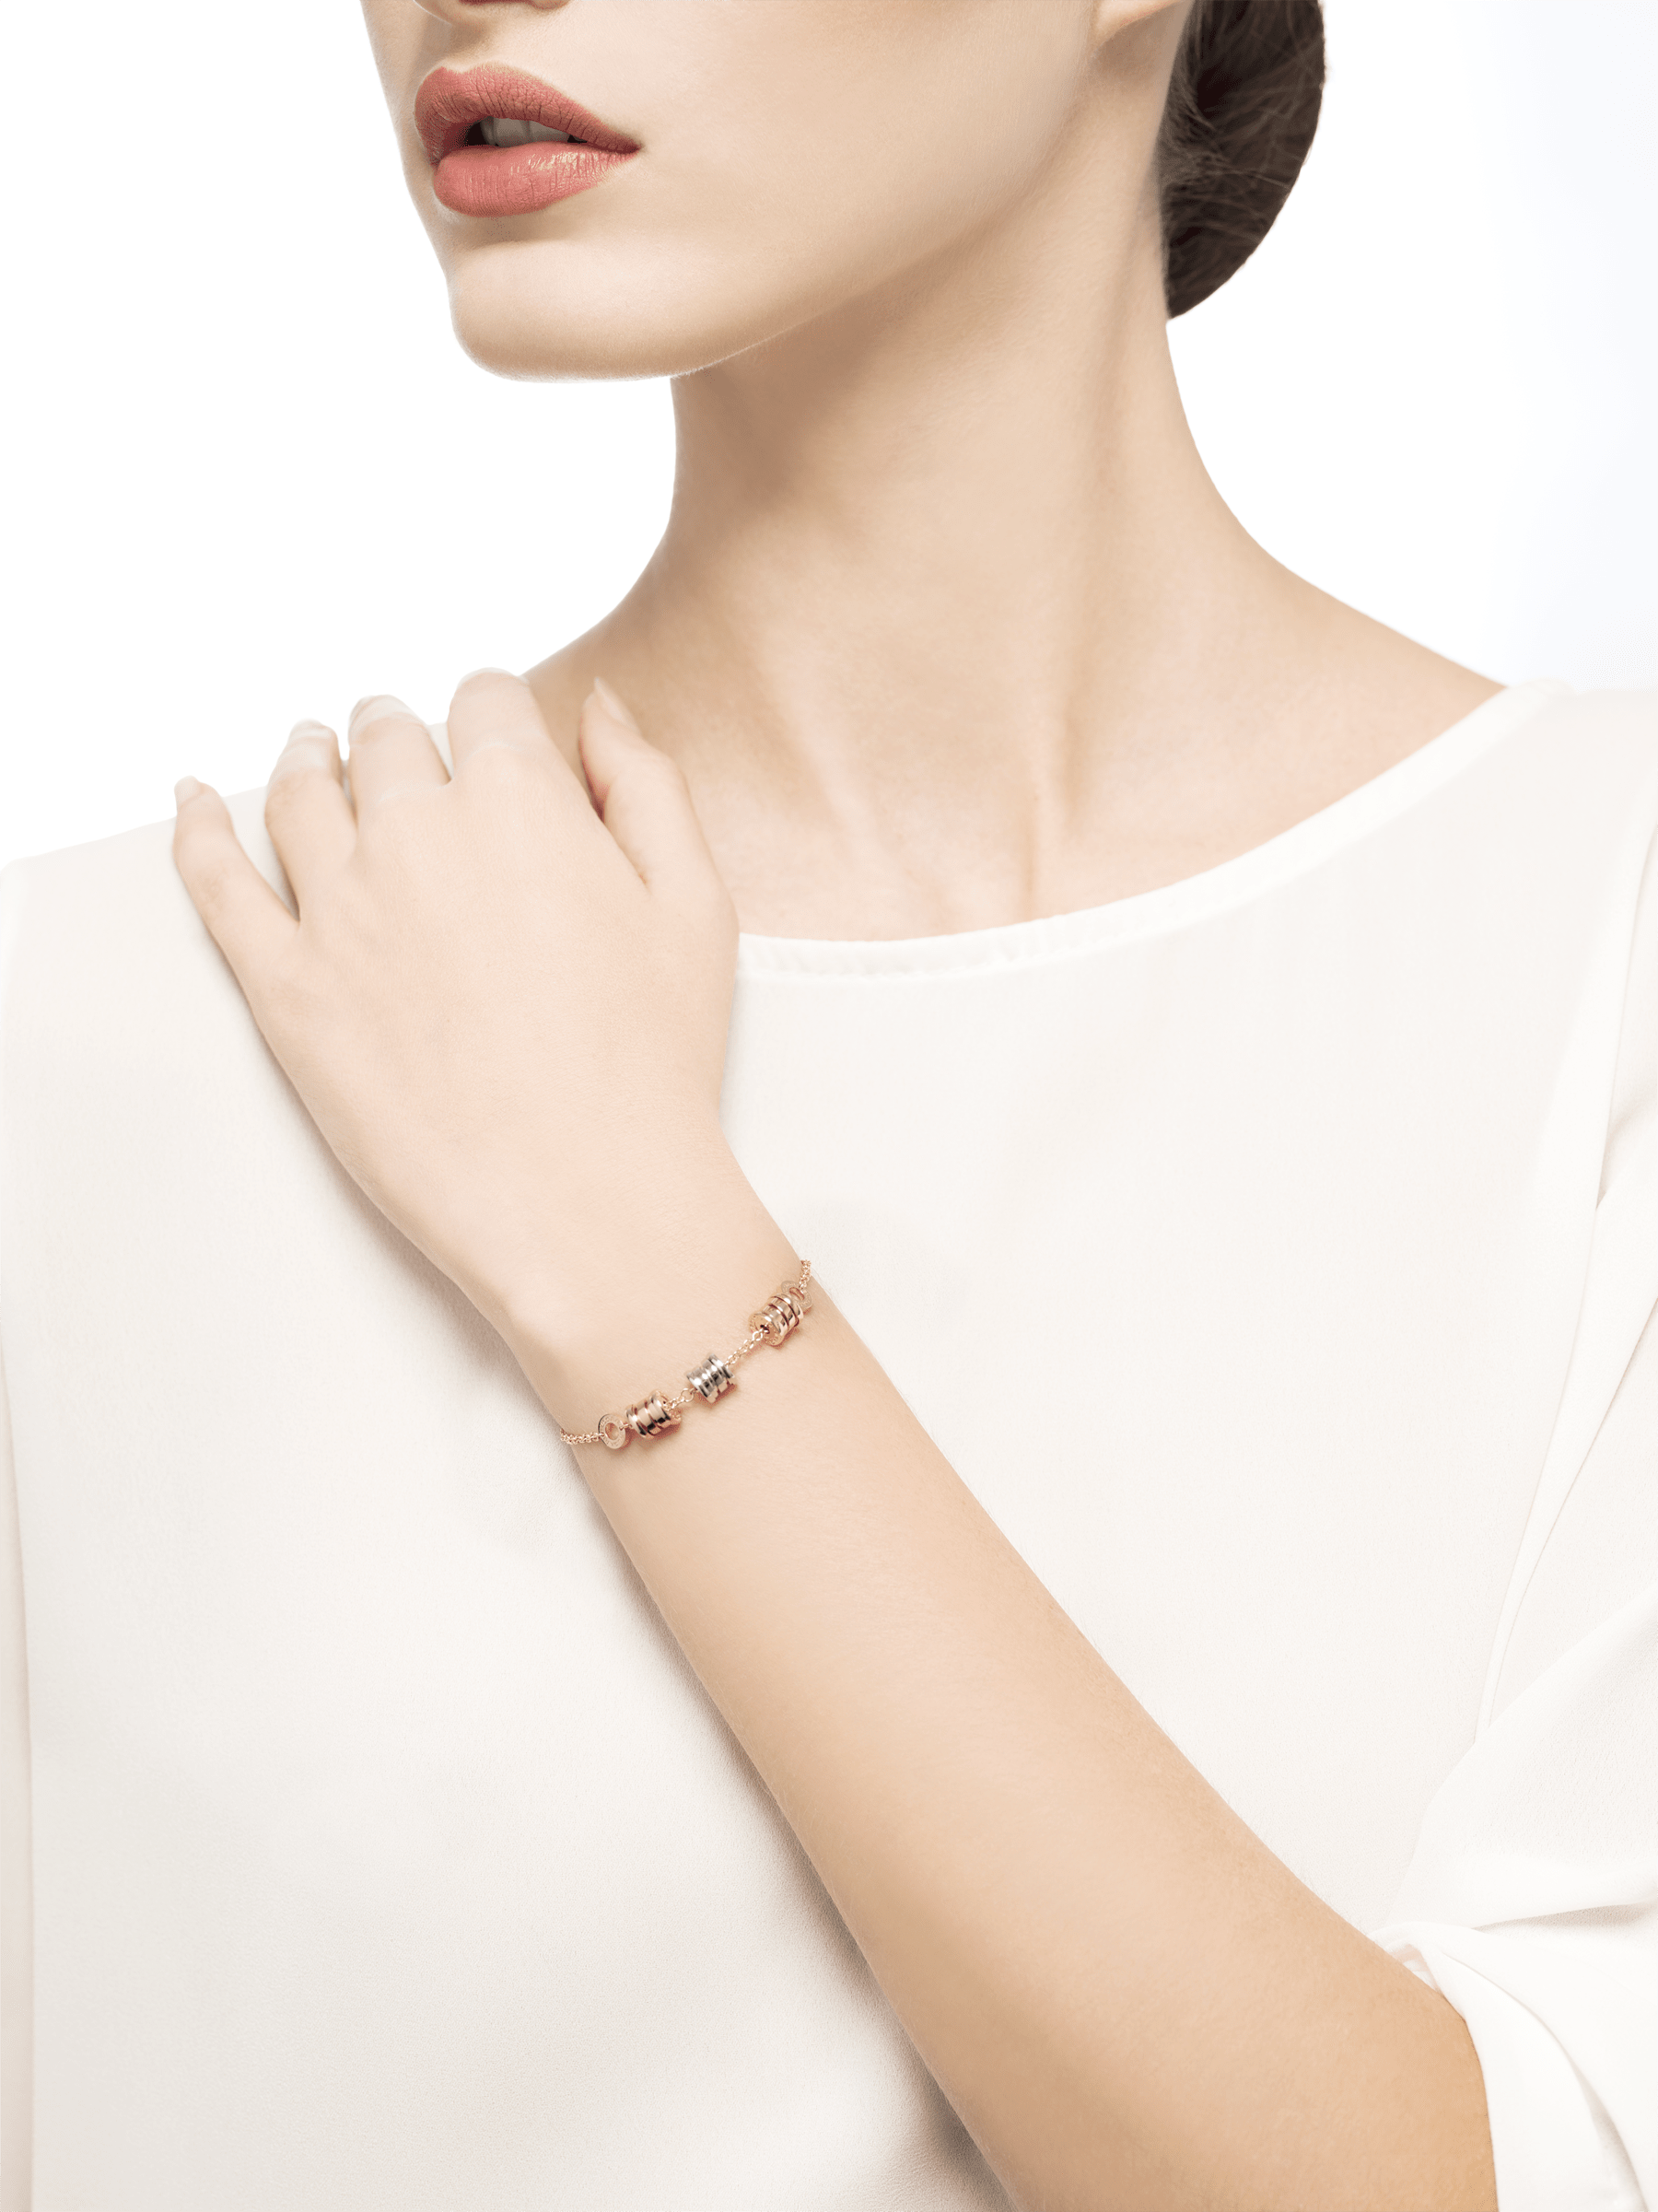 B.zero1 soft bracelet with 18 kt yellow gold chain and three spirals in yellow, white and rose 18 kt gold. BR853666 image 3